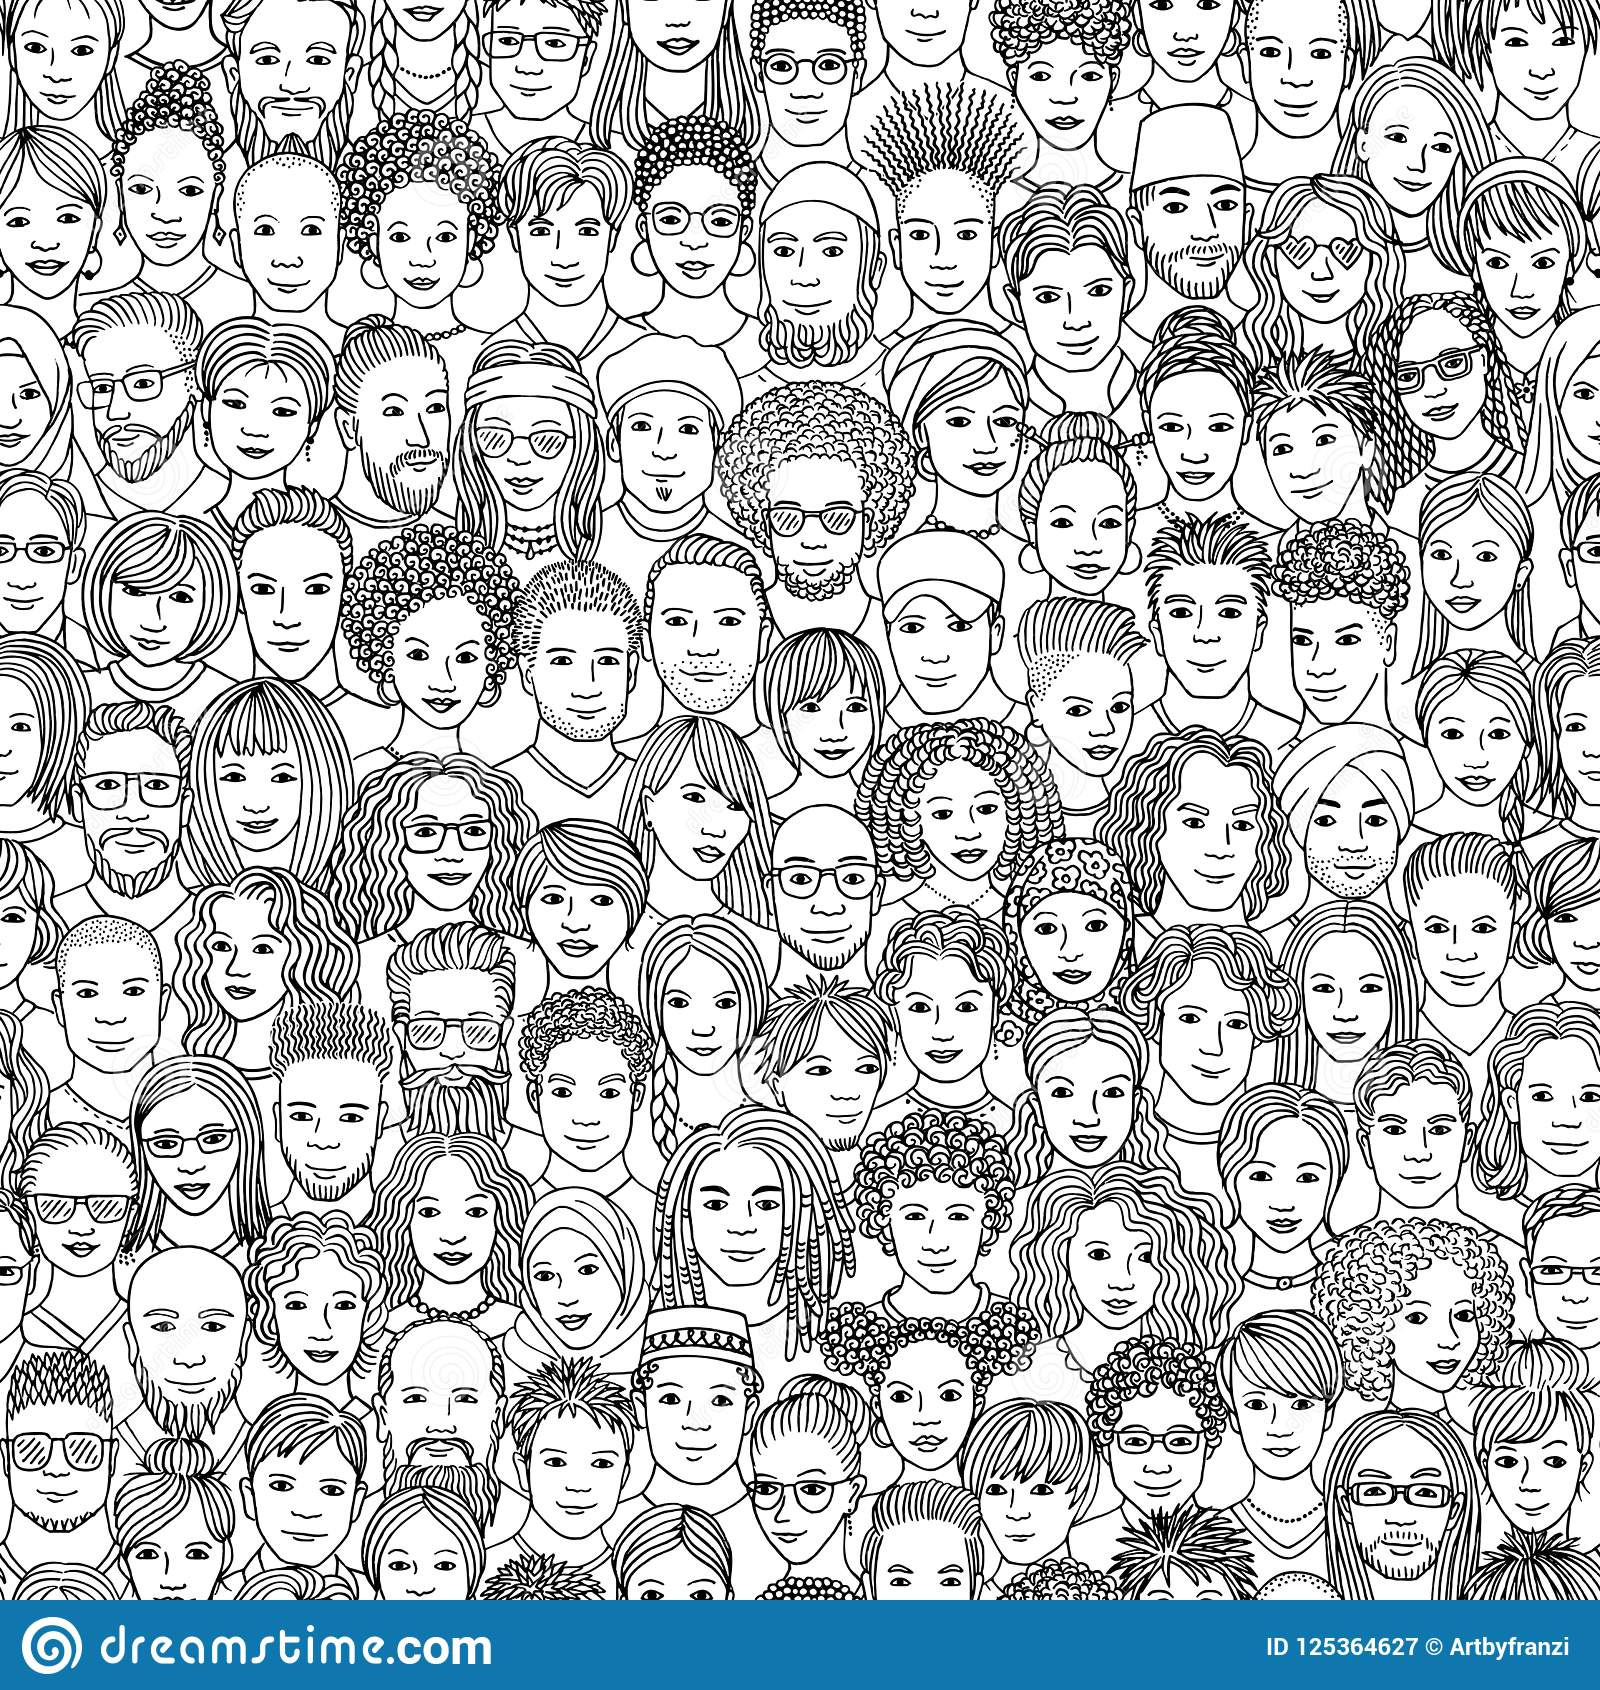 Diverse crowd of people seamless pattern of 100 hand drawn faces of various ethnicities black and white ink illustration